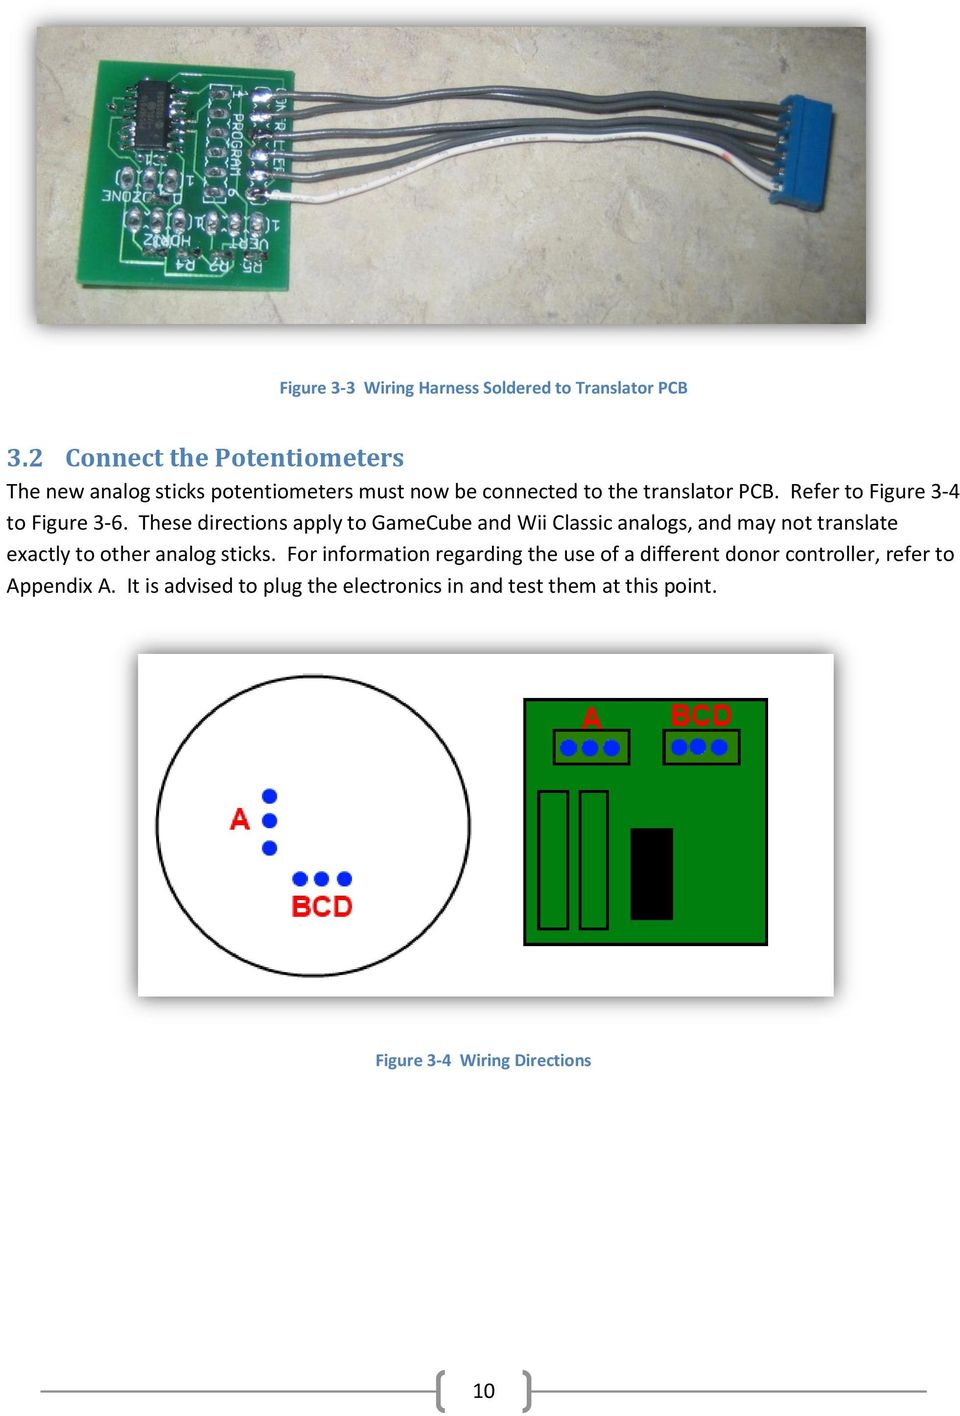 Gamecube Controller Wiring Diagram Right Stick N64 Potentiometer Analog Retrofit Pdf Refer To Figure 3 4 6